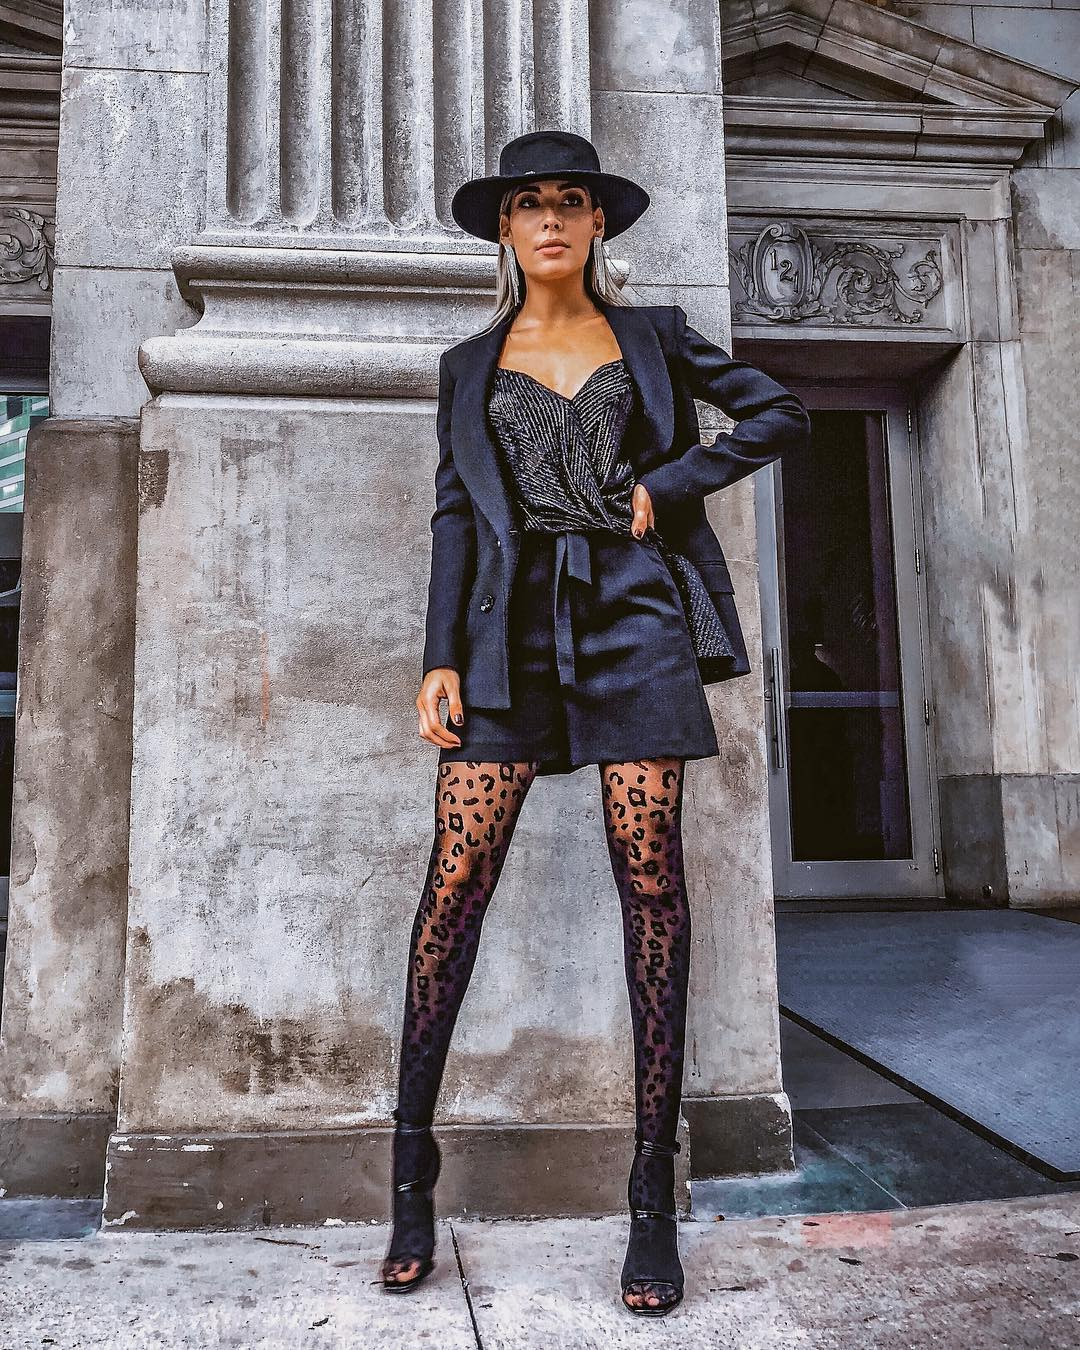 Autumn shorts suit in black for Night Outs 2021